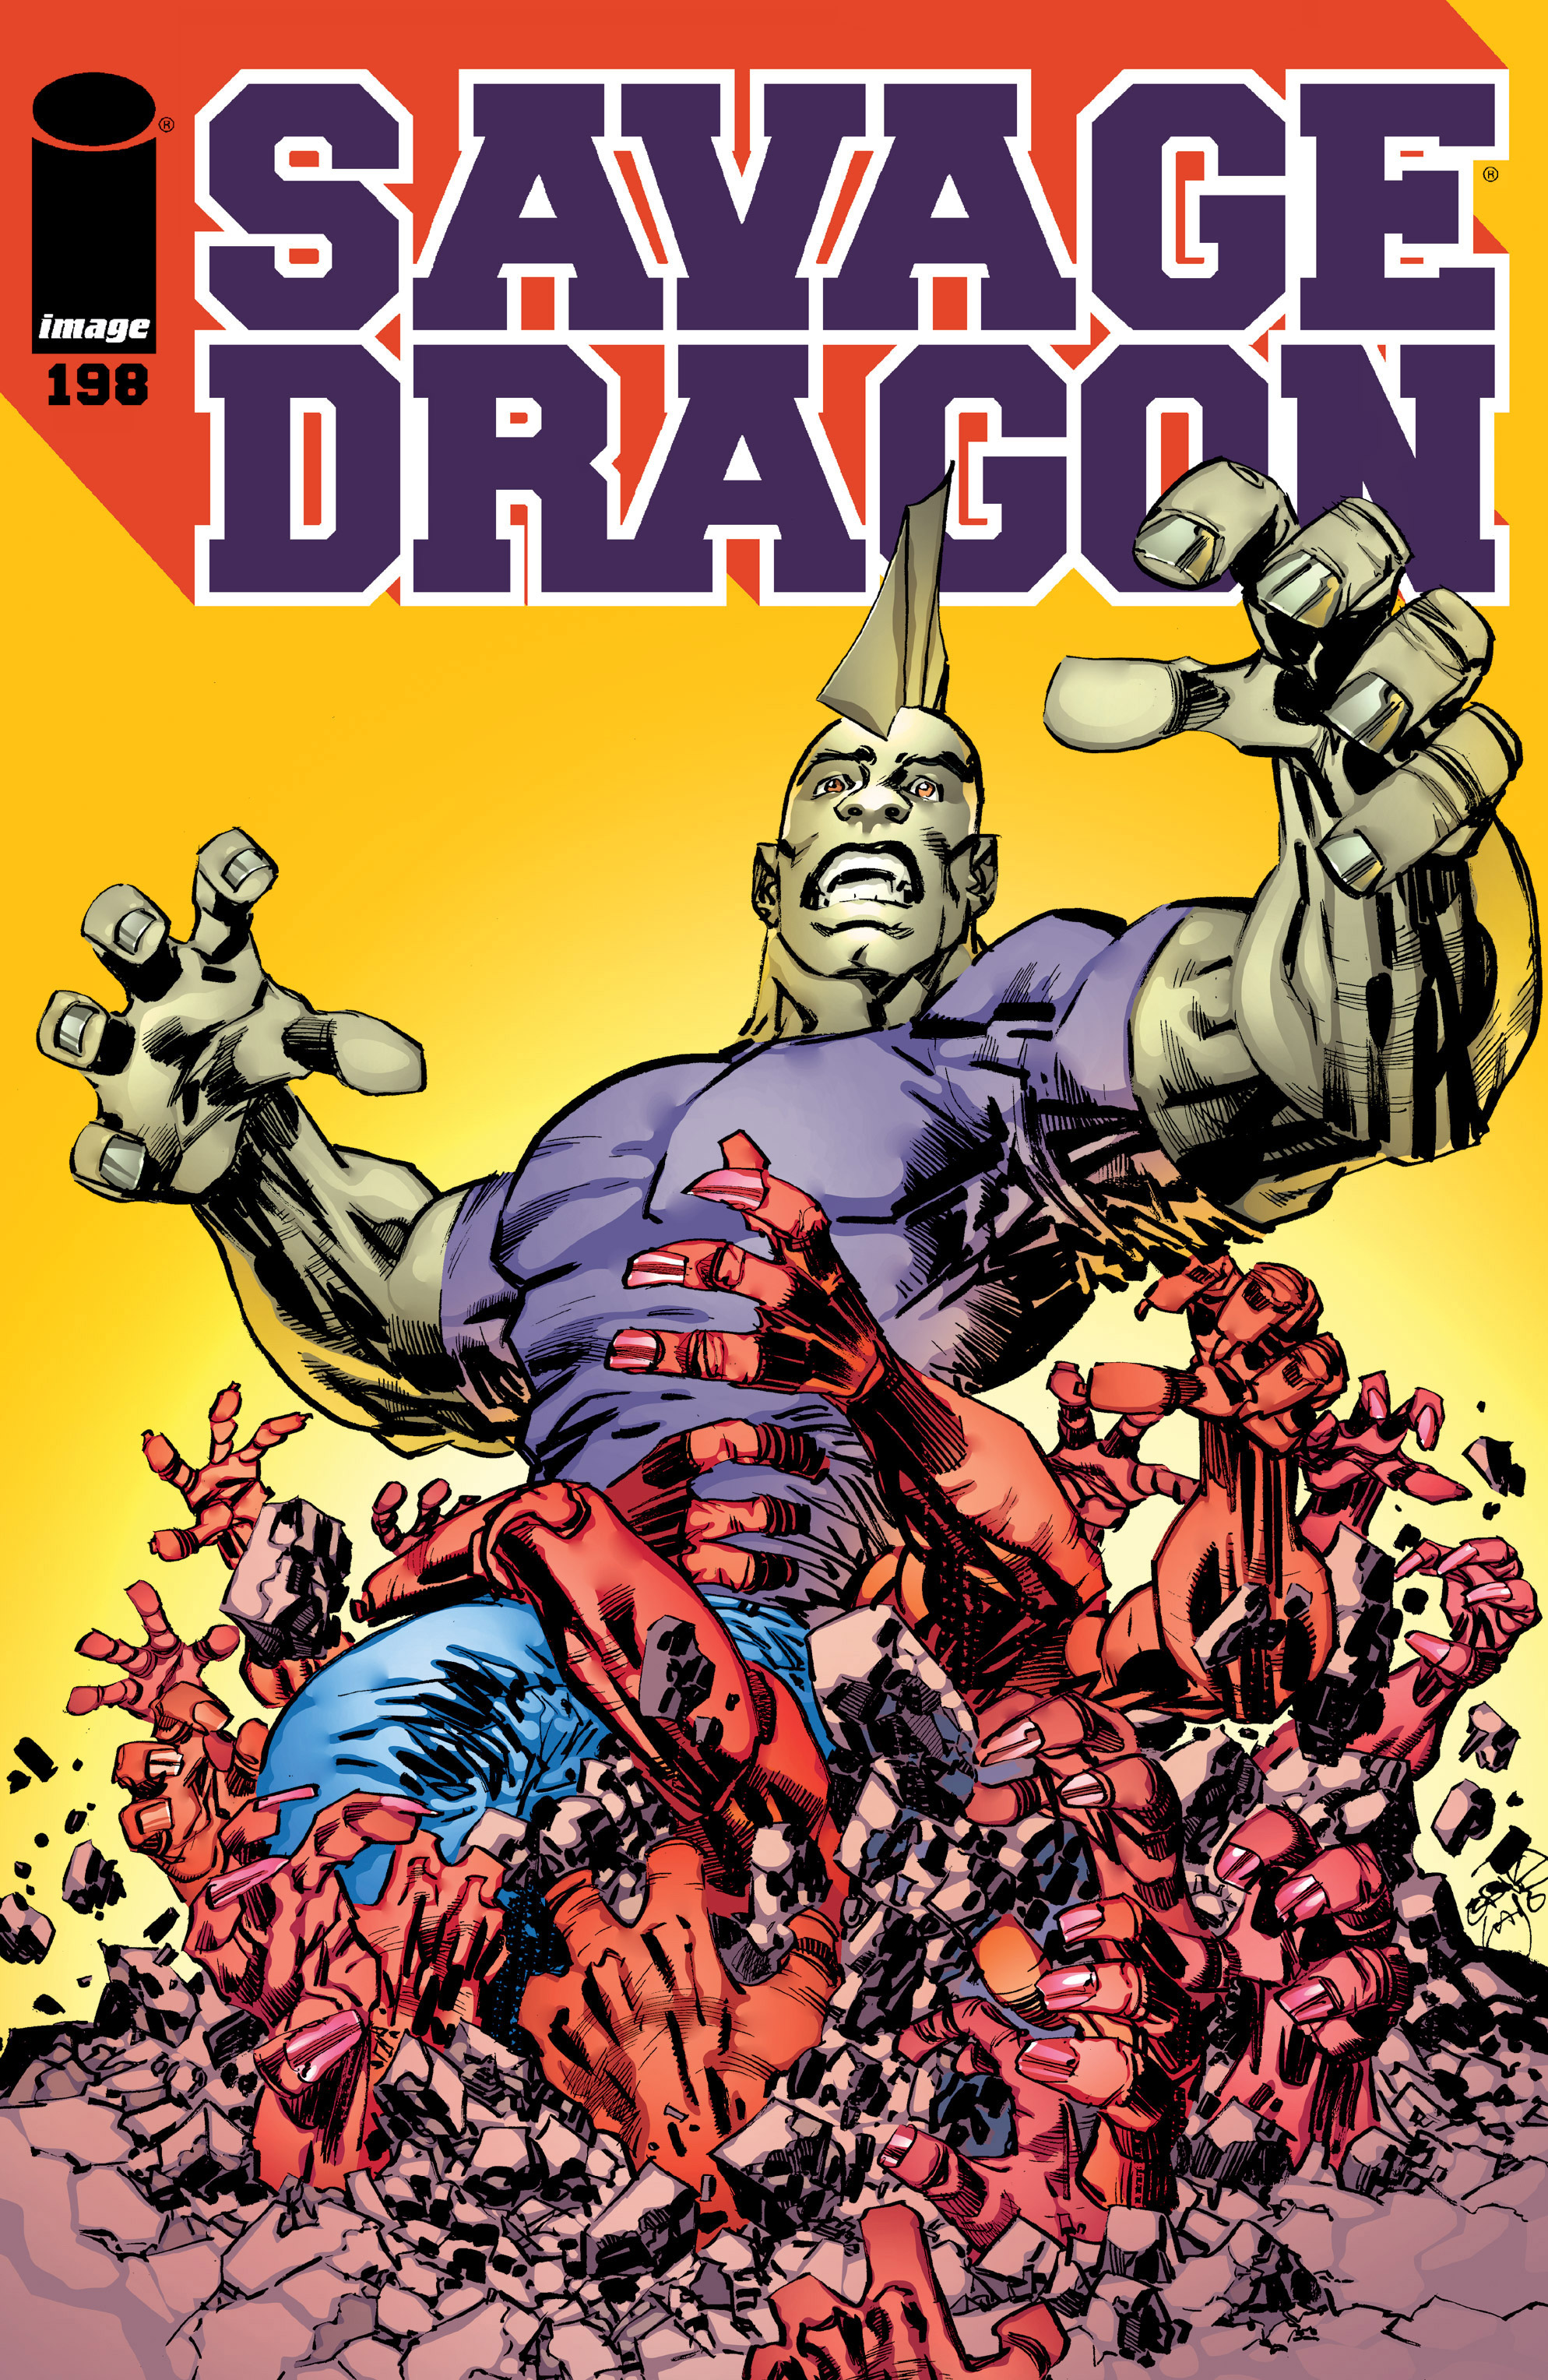 Cover Savage Dragon Vol.2 #198